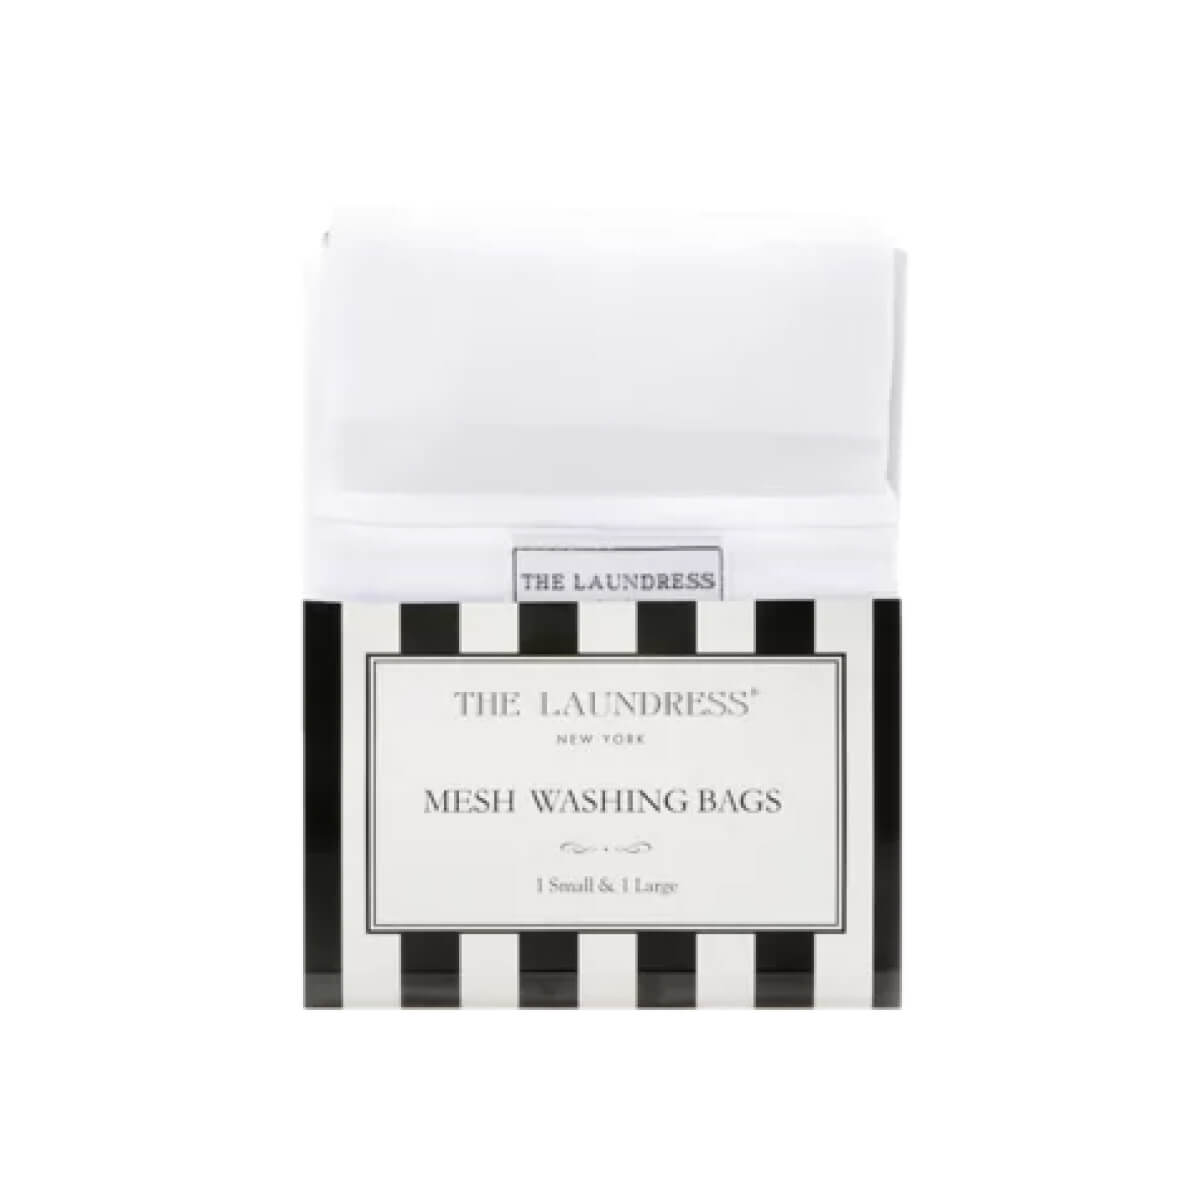 The Laundress mesh washing bags